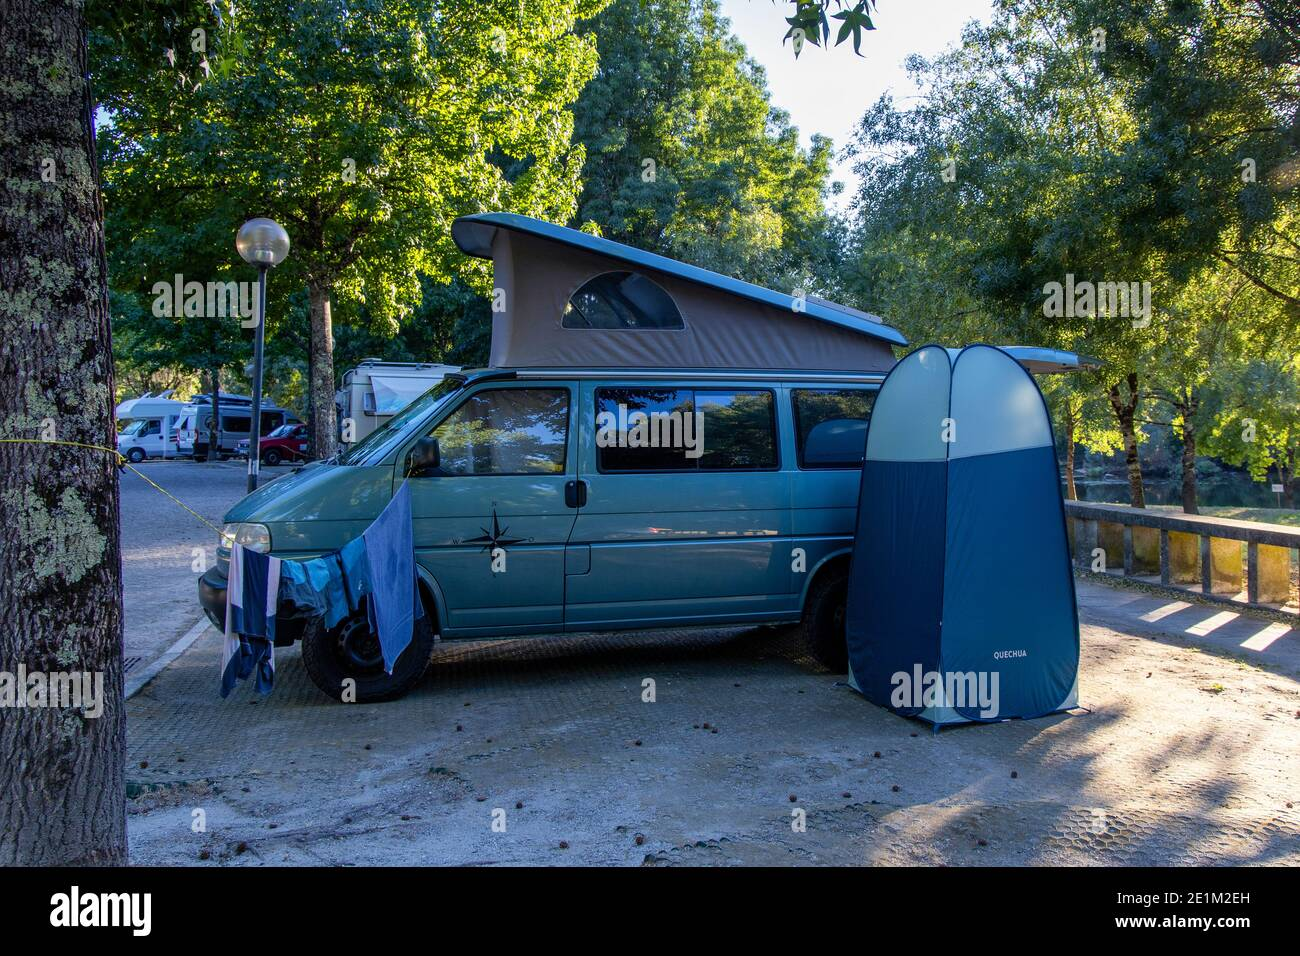 Vw T4 Camping With Offroad Camper Vw T4 Syncro California Coach Campervan With Pop Up Roof At Public Parking In Ponte Da Barca North Of Portugal Stock Photo Alamy